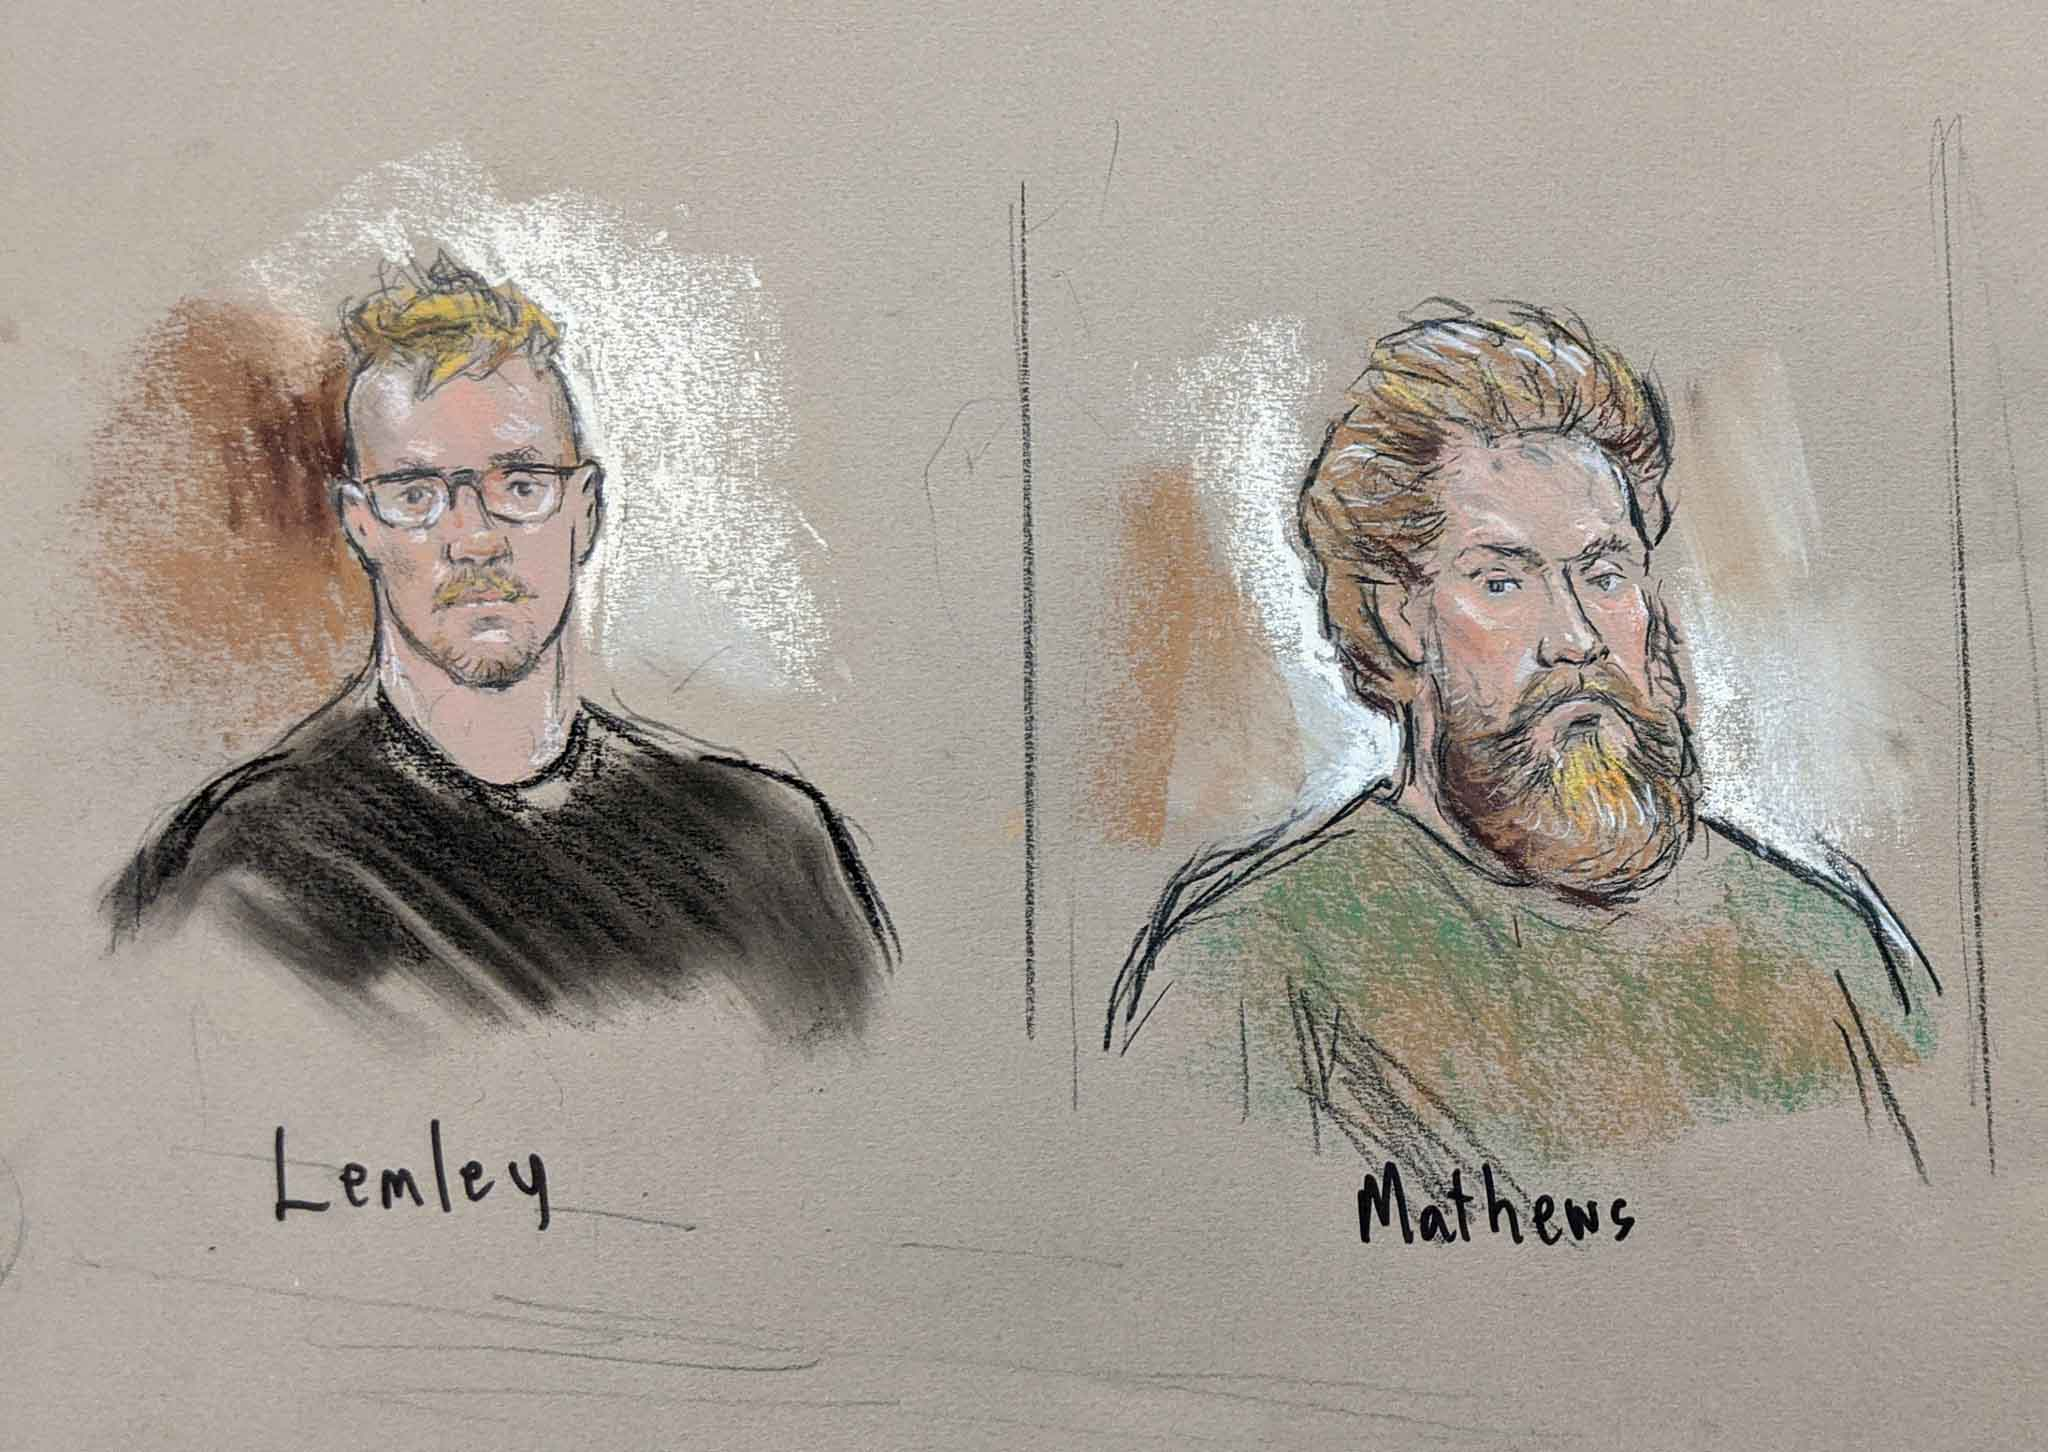 Brian Mark Lemley Jr. and Patrik Mathews appeared in court on Jan. 15, 2020 in Greenbelt, MD.